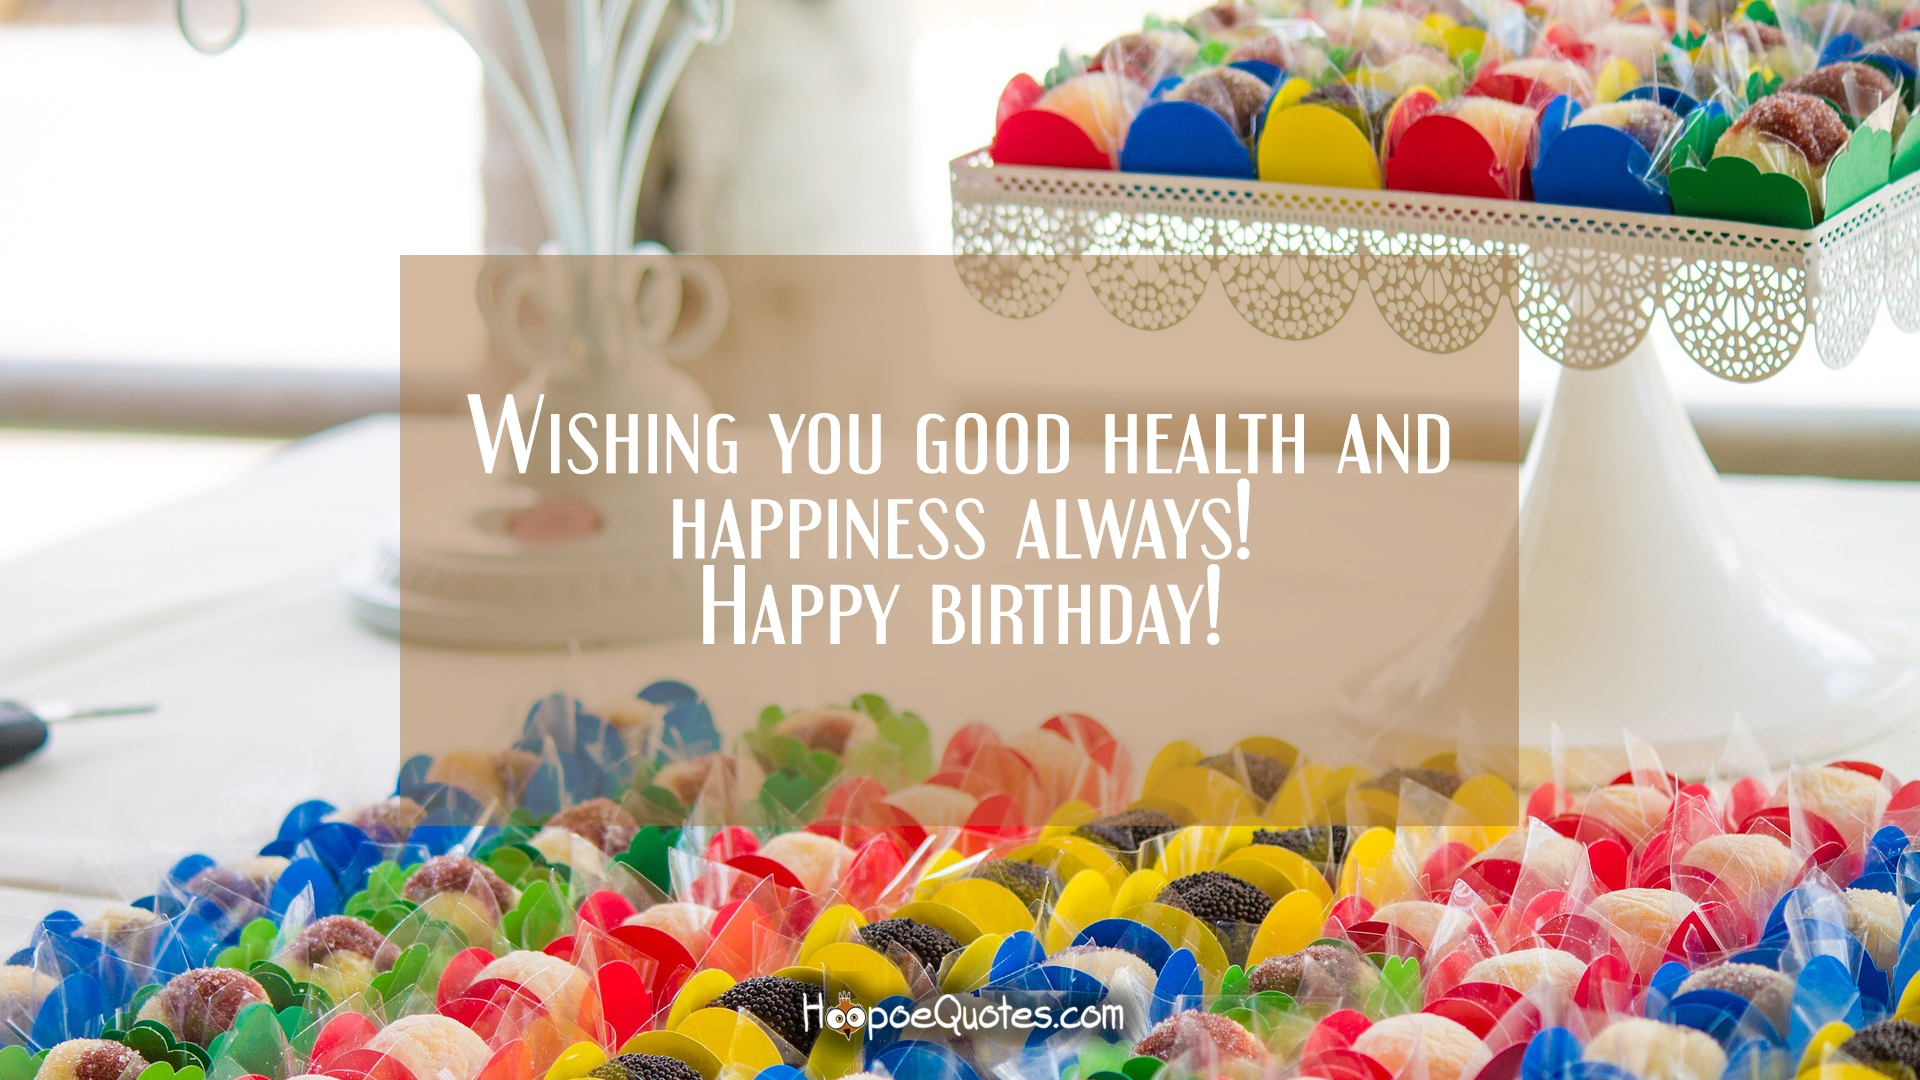 birthday wishes high quality images ; 220648fdd97ca146ef7f4d7880d1a5a5